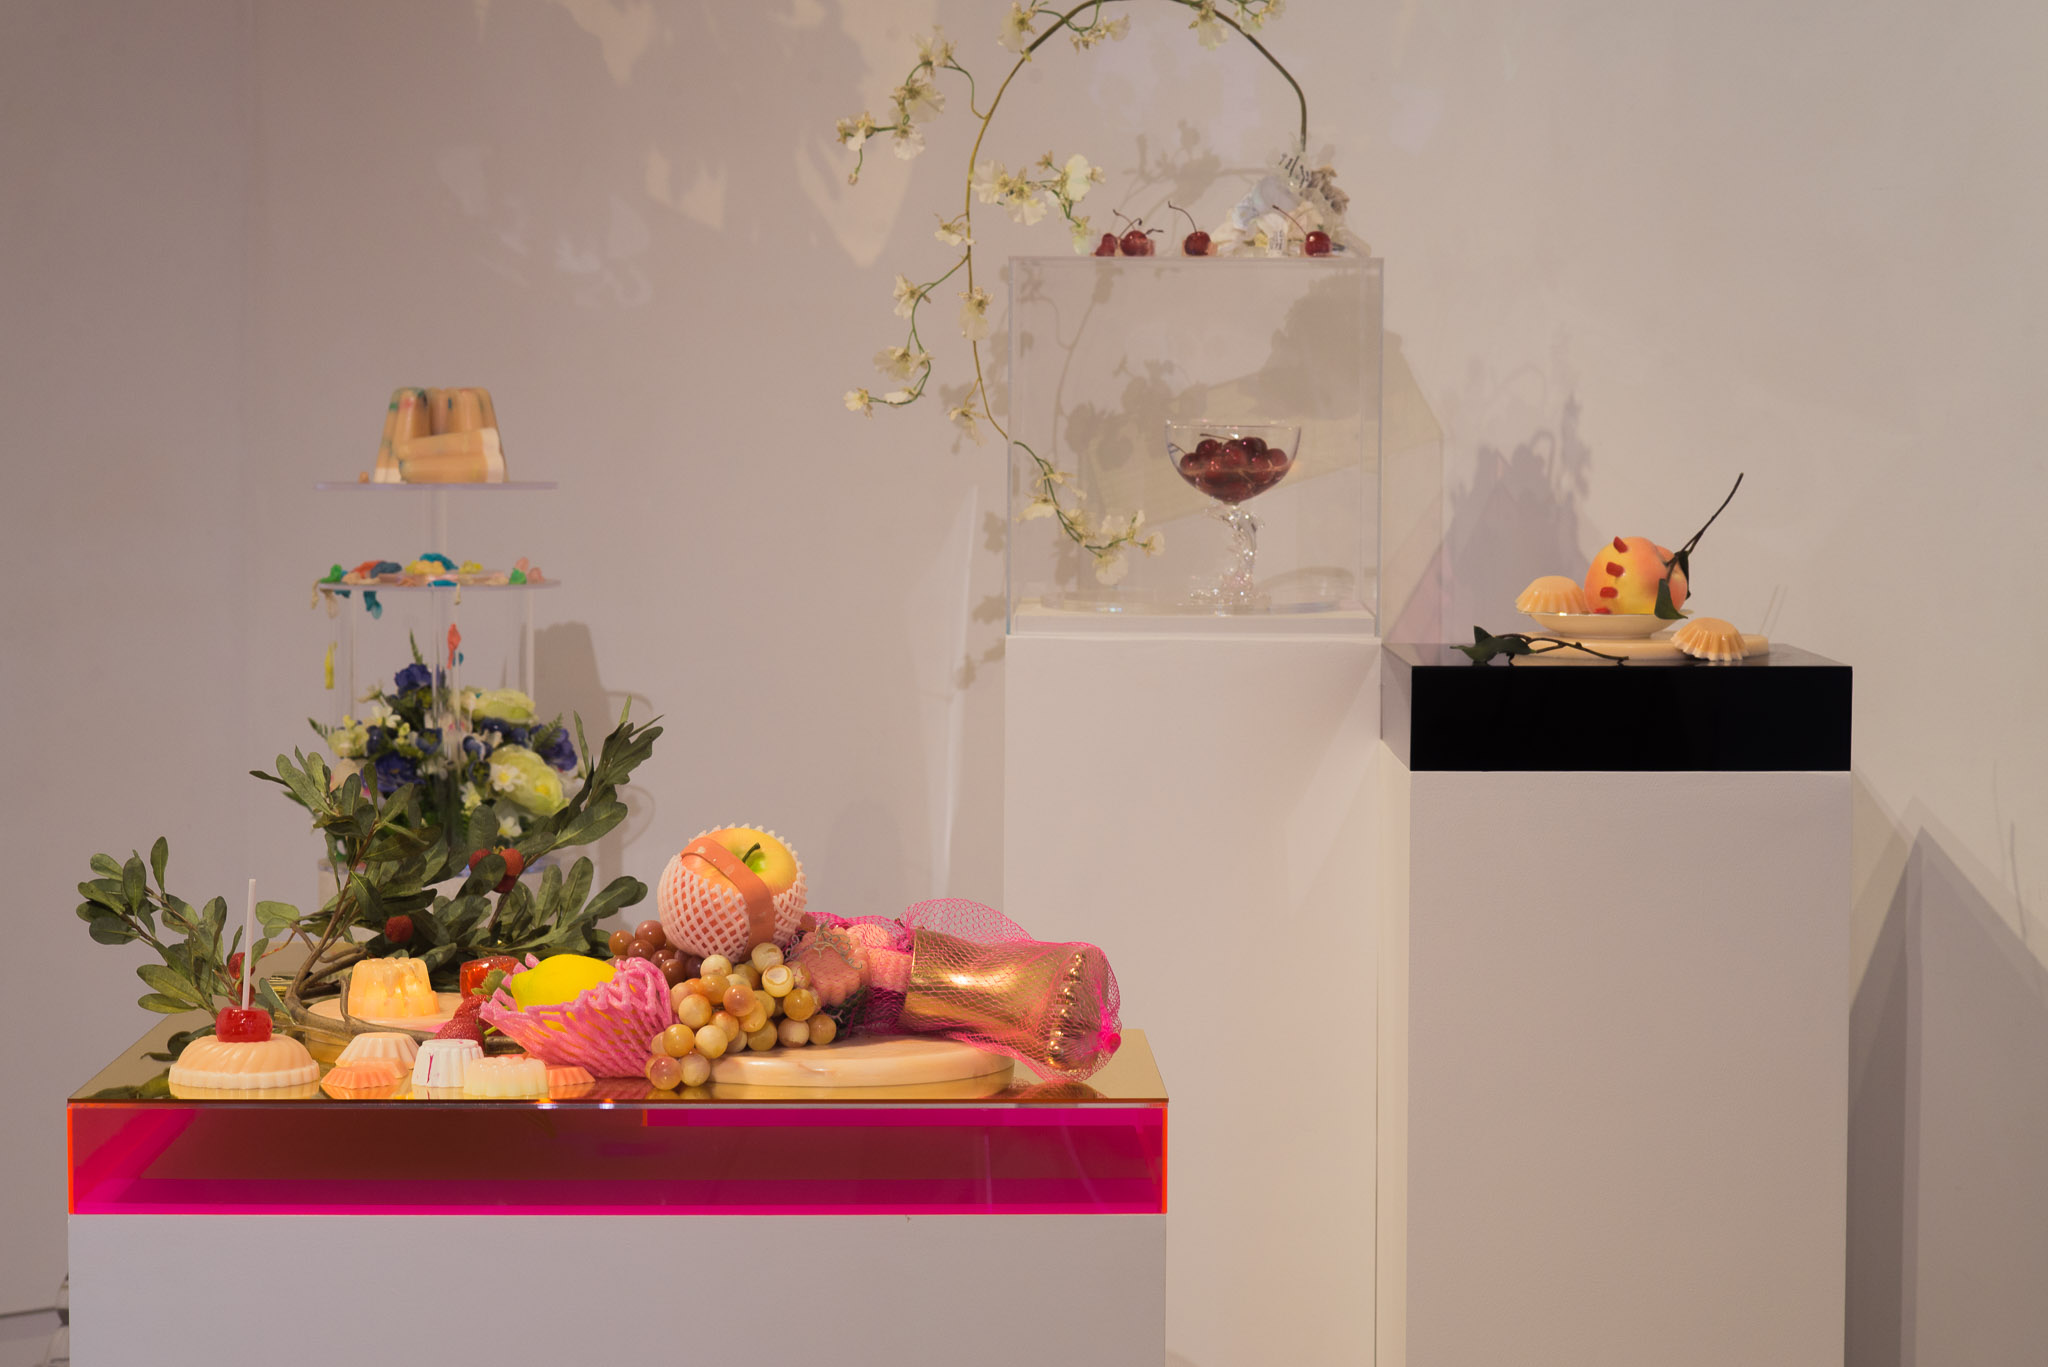 Installation view with  Low Hanging Fruit, Garden, Fountain of Dreams,  and  Peach's Peaches,  2017. Mixed media; dimensions variable. Photographed by Tamara Legér.